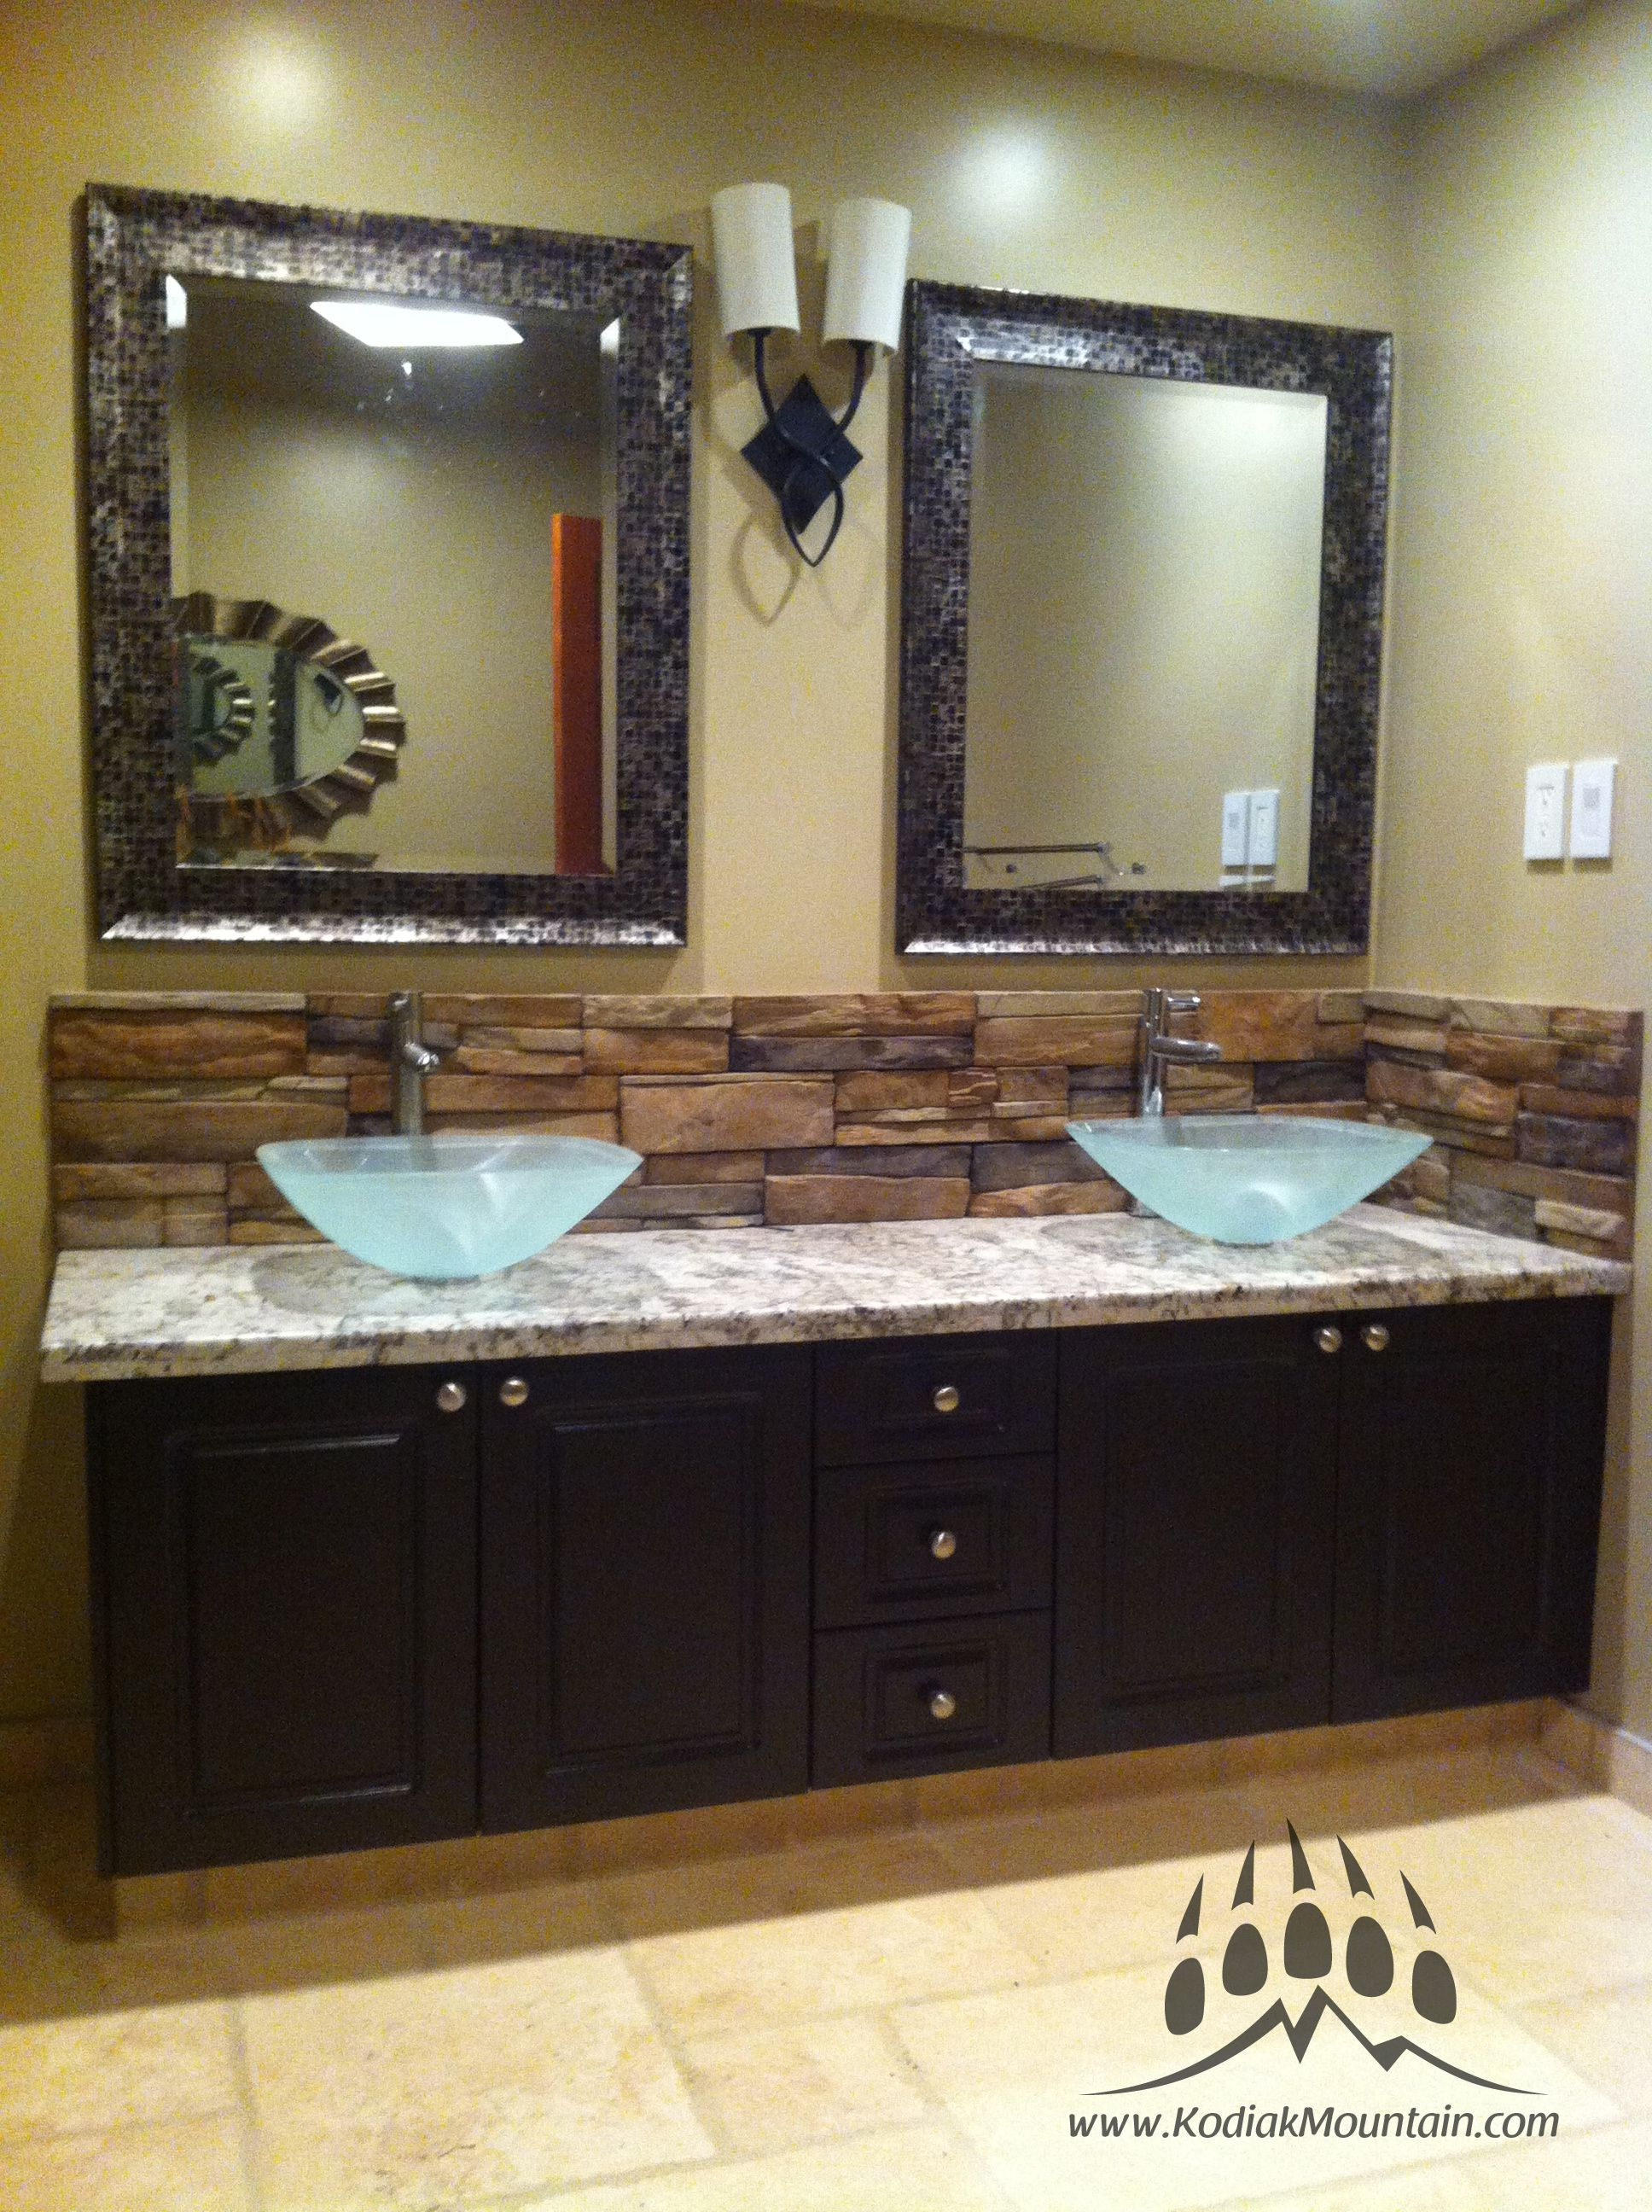 Bathroom Back Splash Kodiak Mountain Stone Frontier Ledge Color Utah